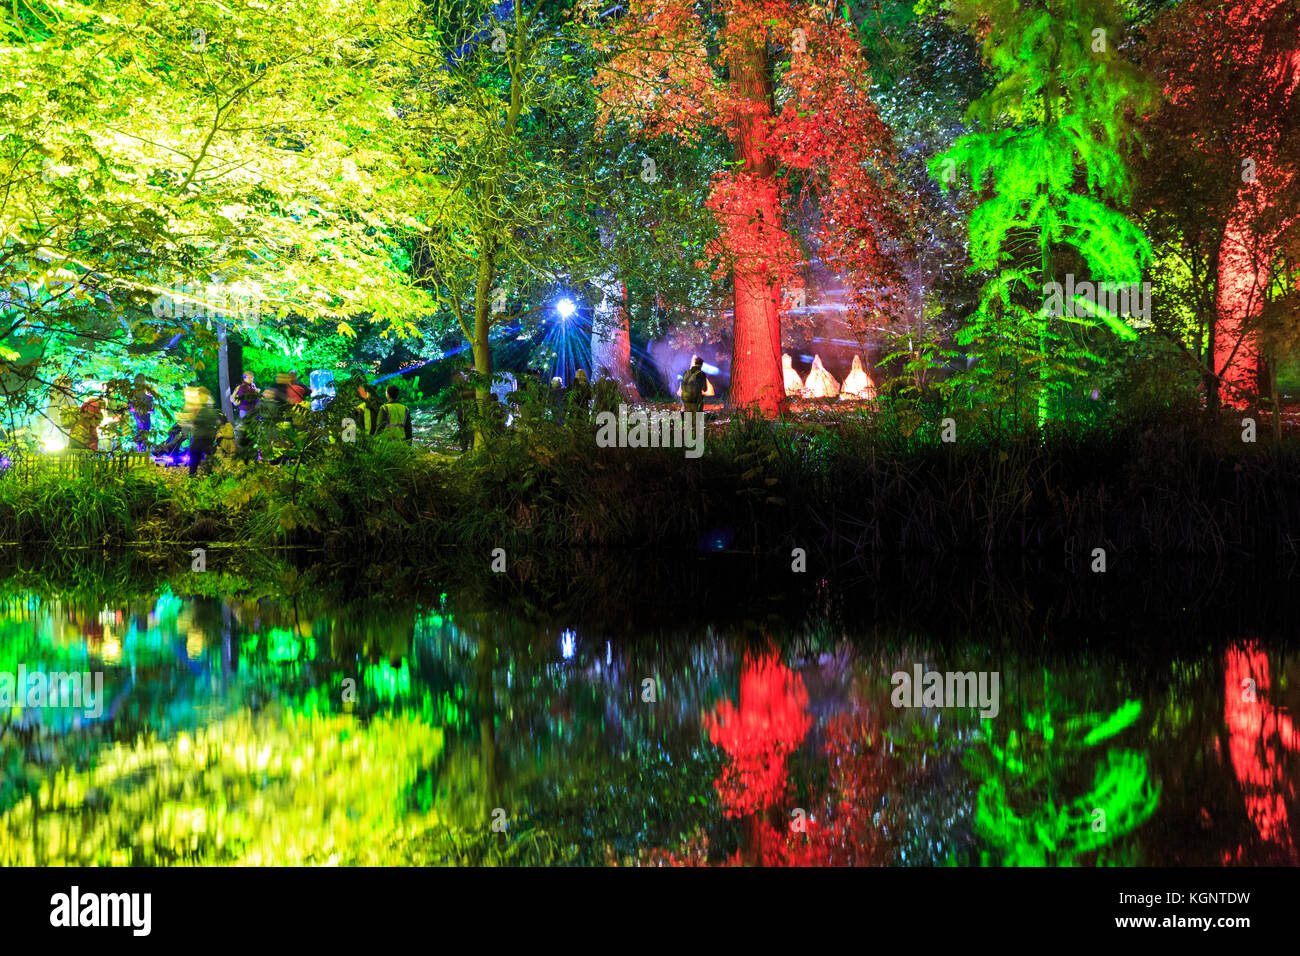 Syon Park, London, UK. 10th Nov, 2017. A trail leads visitors through the illuminated Syon Park with beautifully Stock Photo